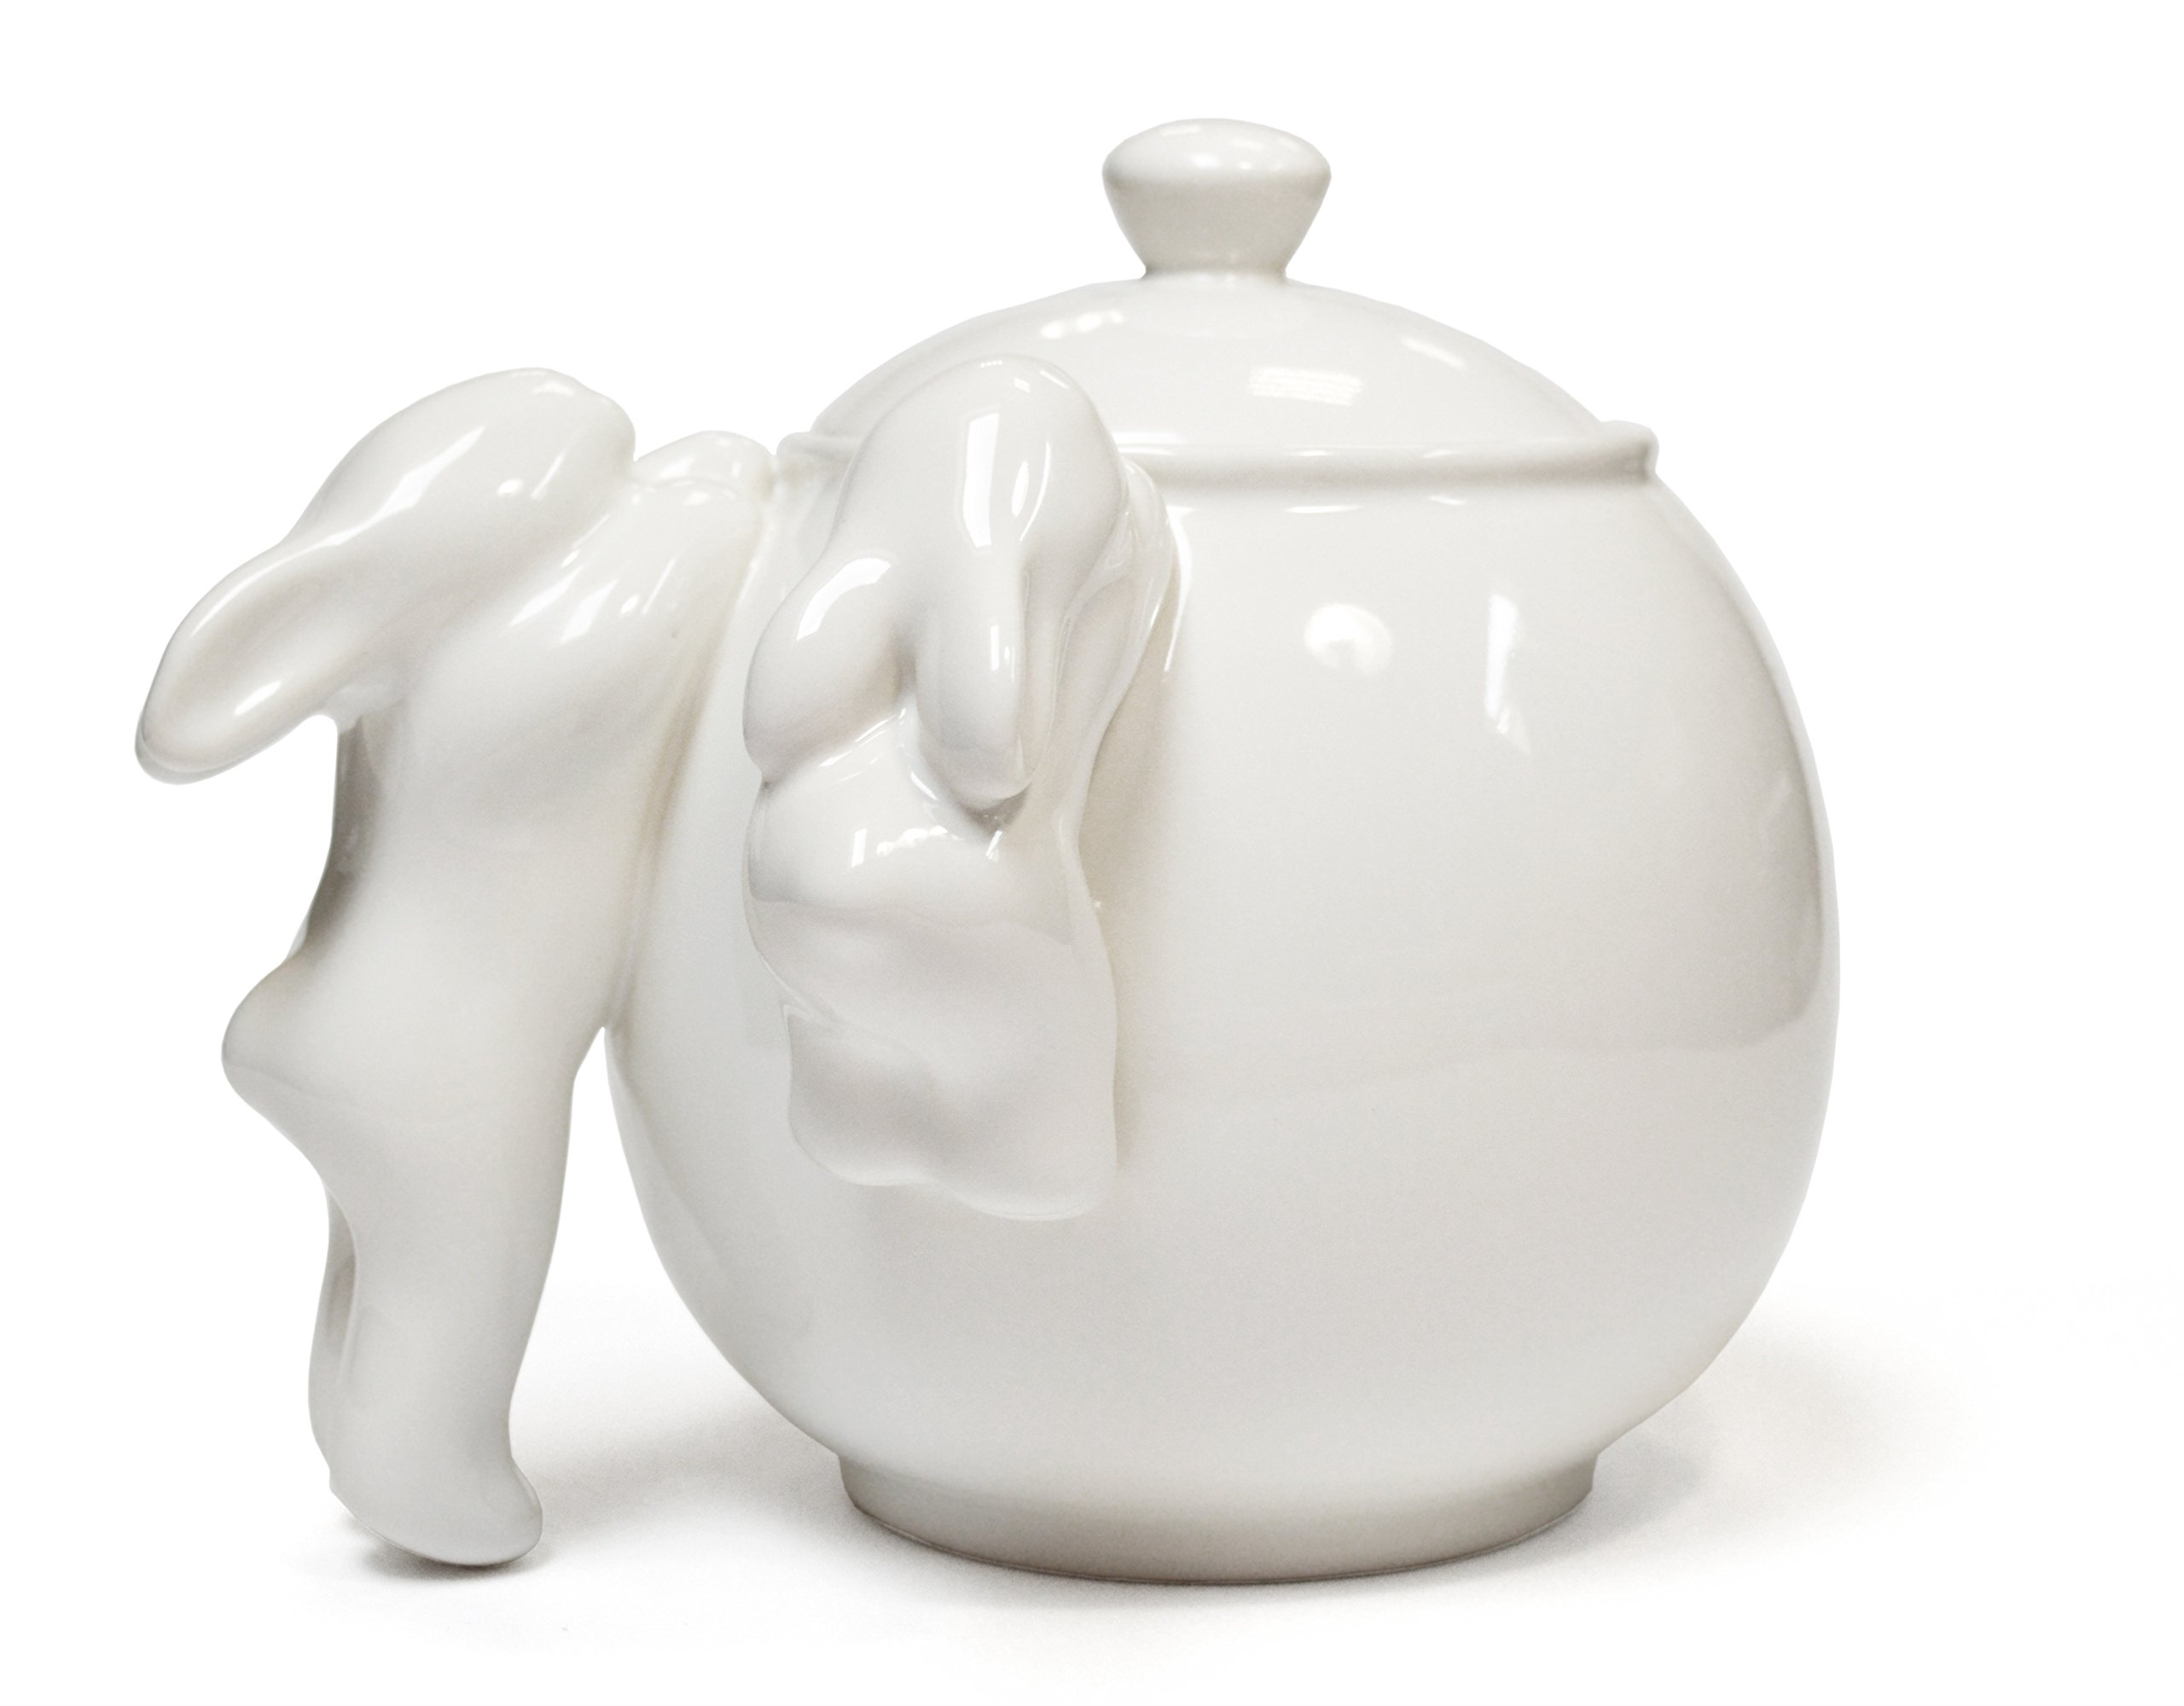 Original Natural Hand Sculpt Ceramic Collectible Porcelain Charming Rabbit Sugar Bowl. Bunny Crockery Art Collection of Tableware Crafts